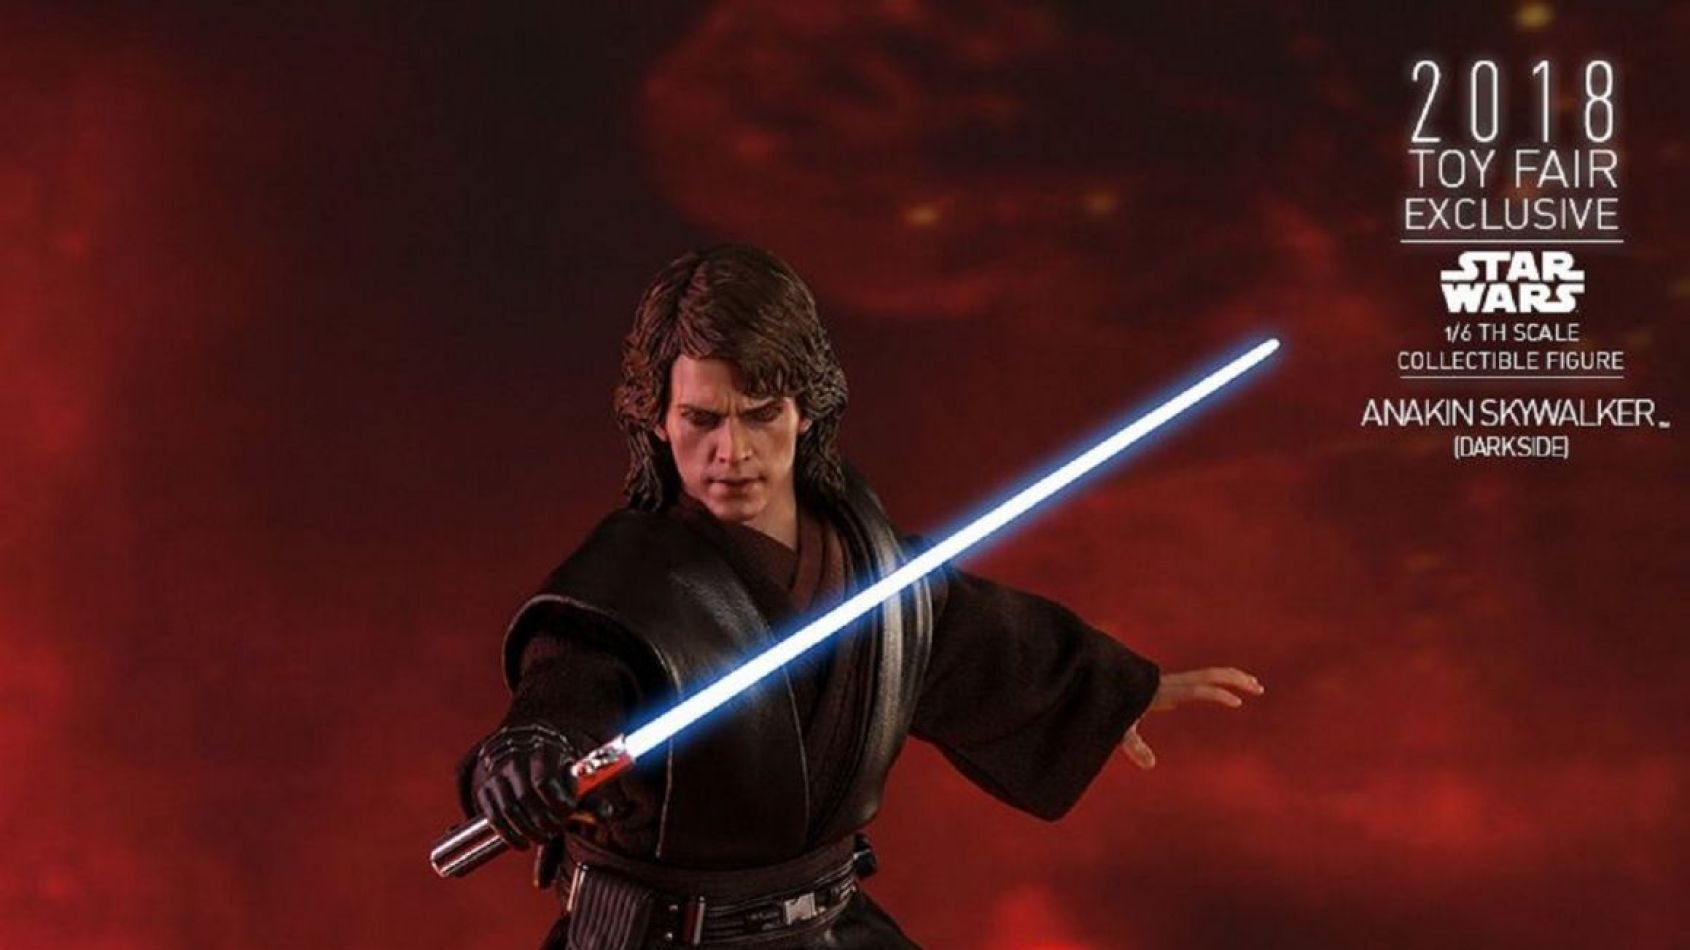 Nouvelle figurine d'Anakin Skywalker par Hot Toys, version Dark Side